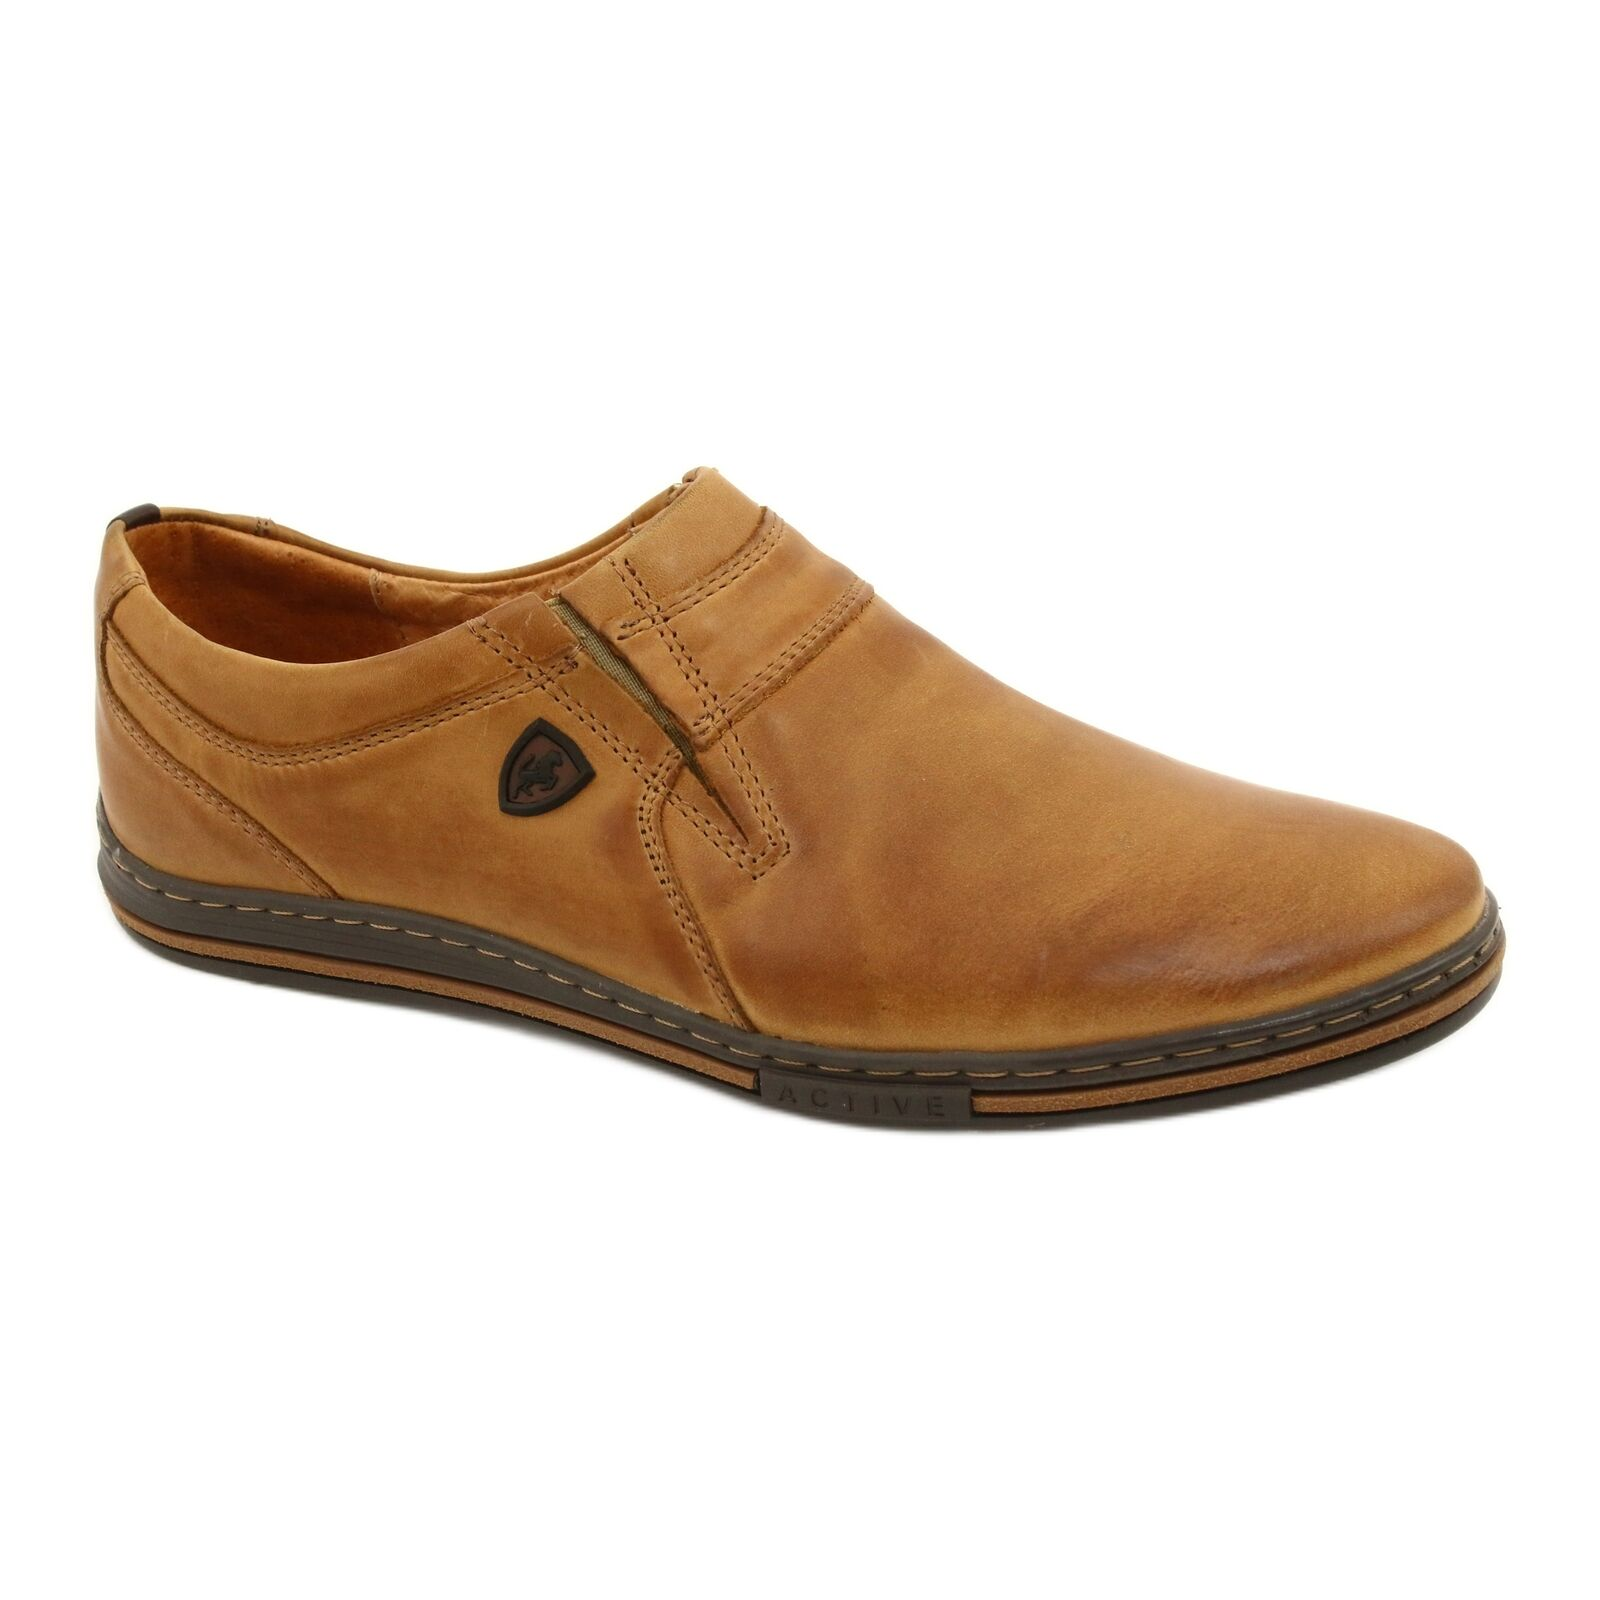 Polbut Men's shoes leather 362 ginger multicolored